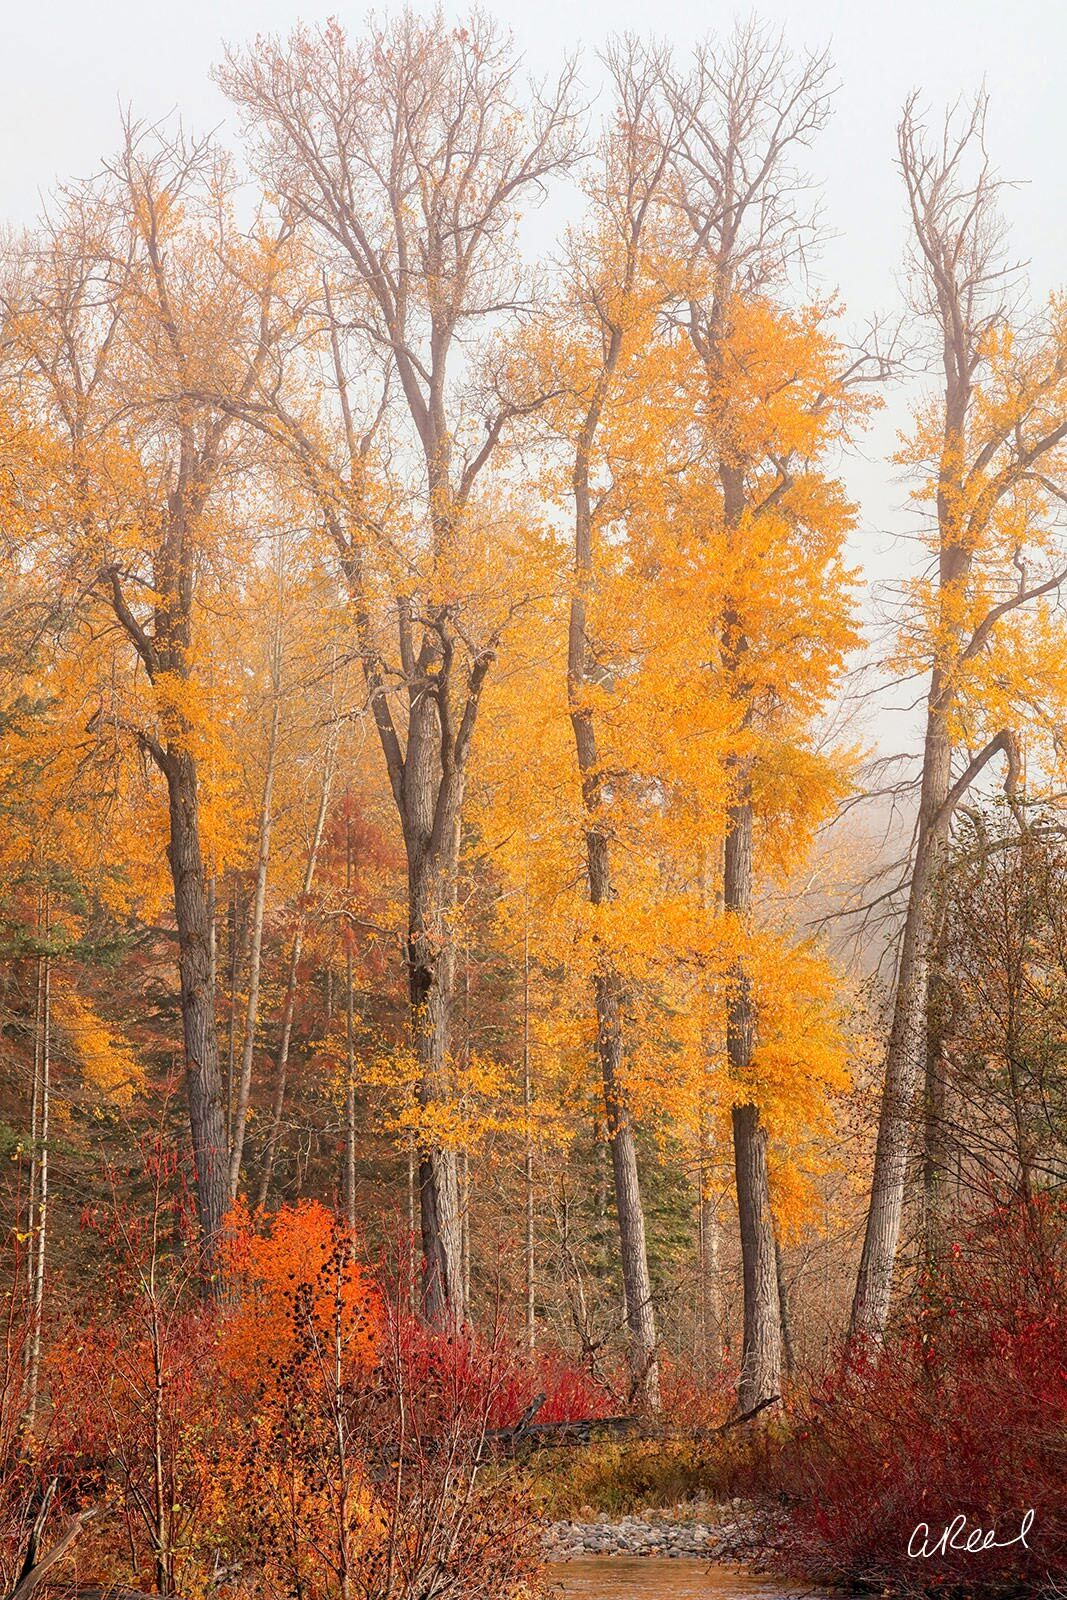 A vertical photograph of tall trees covered in yellow leaves during autumn.